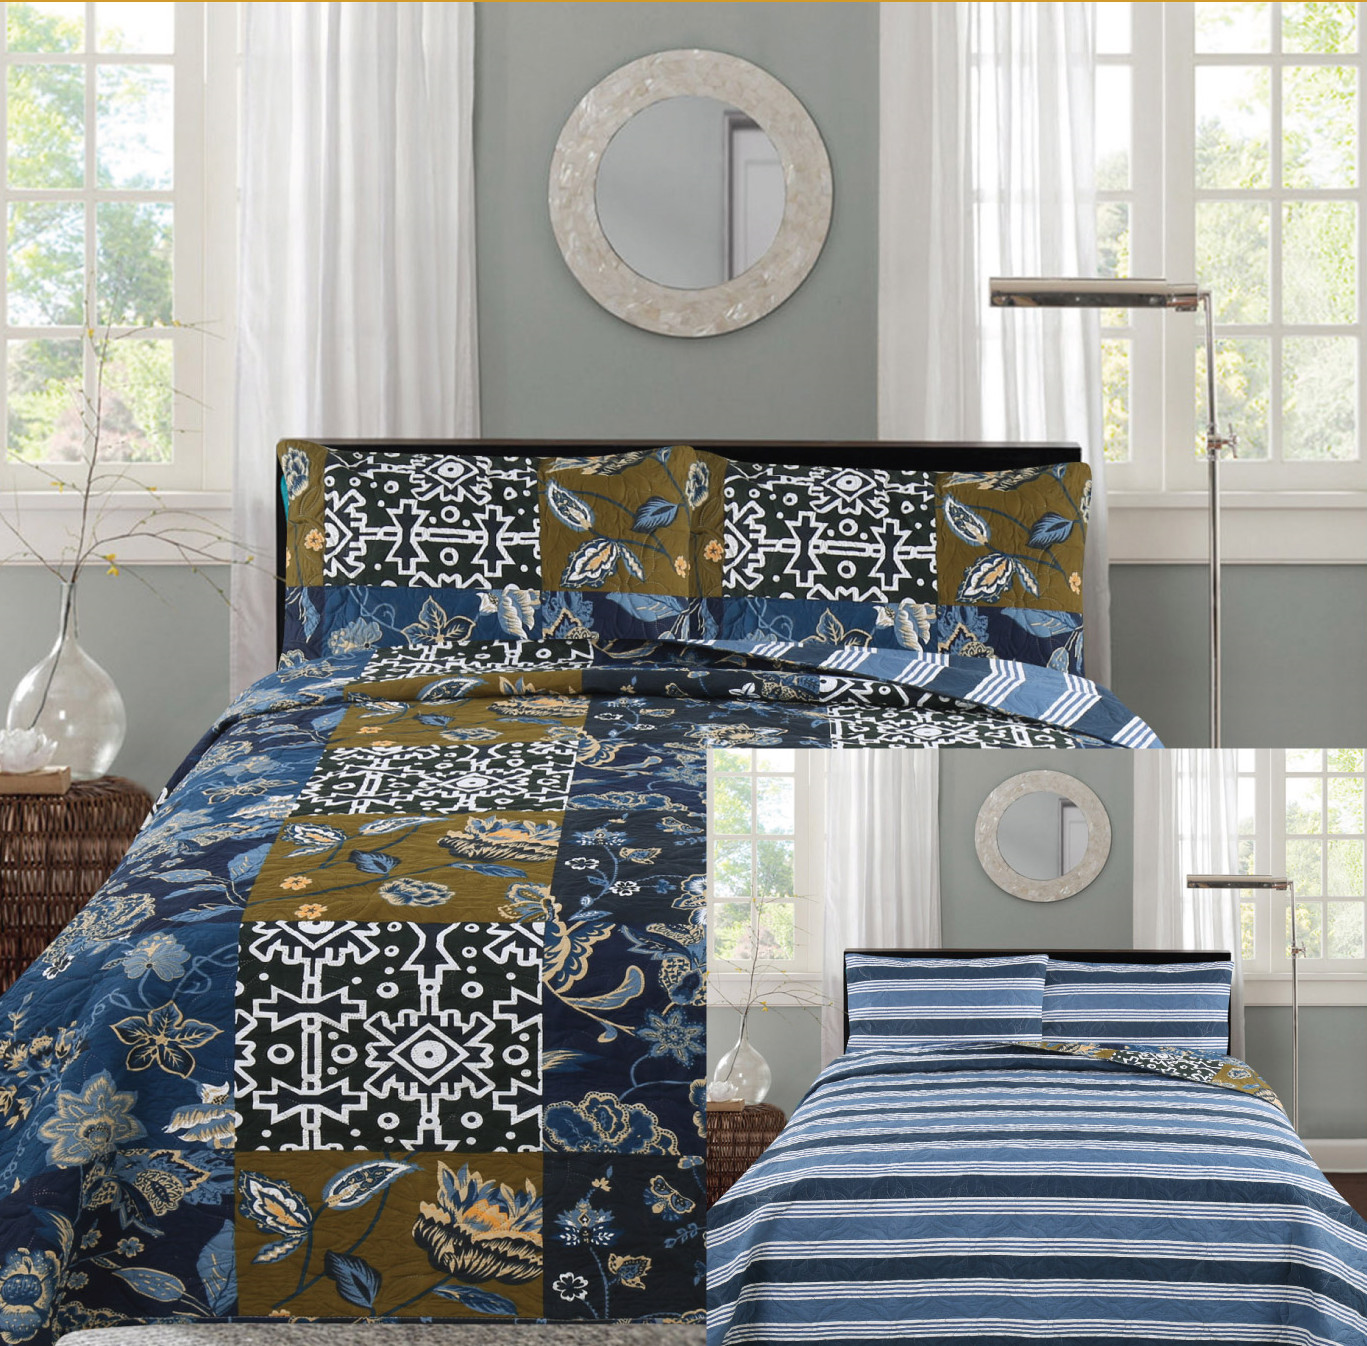 Click here to buy All American Collection New 3pc Printed Reversible Modern Floral Bedspread Coverlet Navy by American Linen & Rugs.